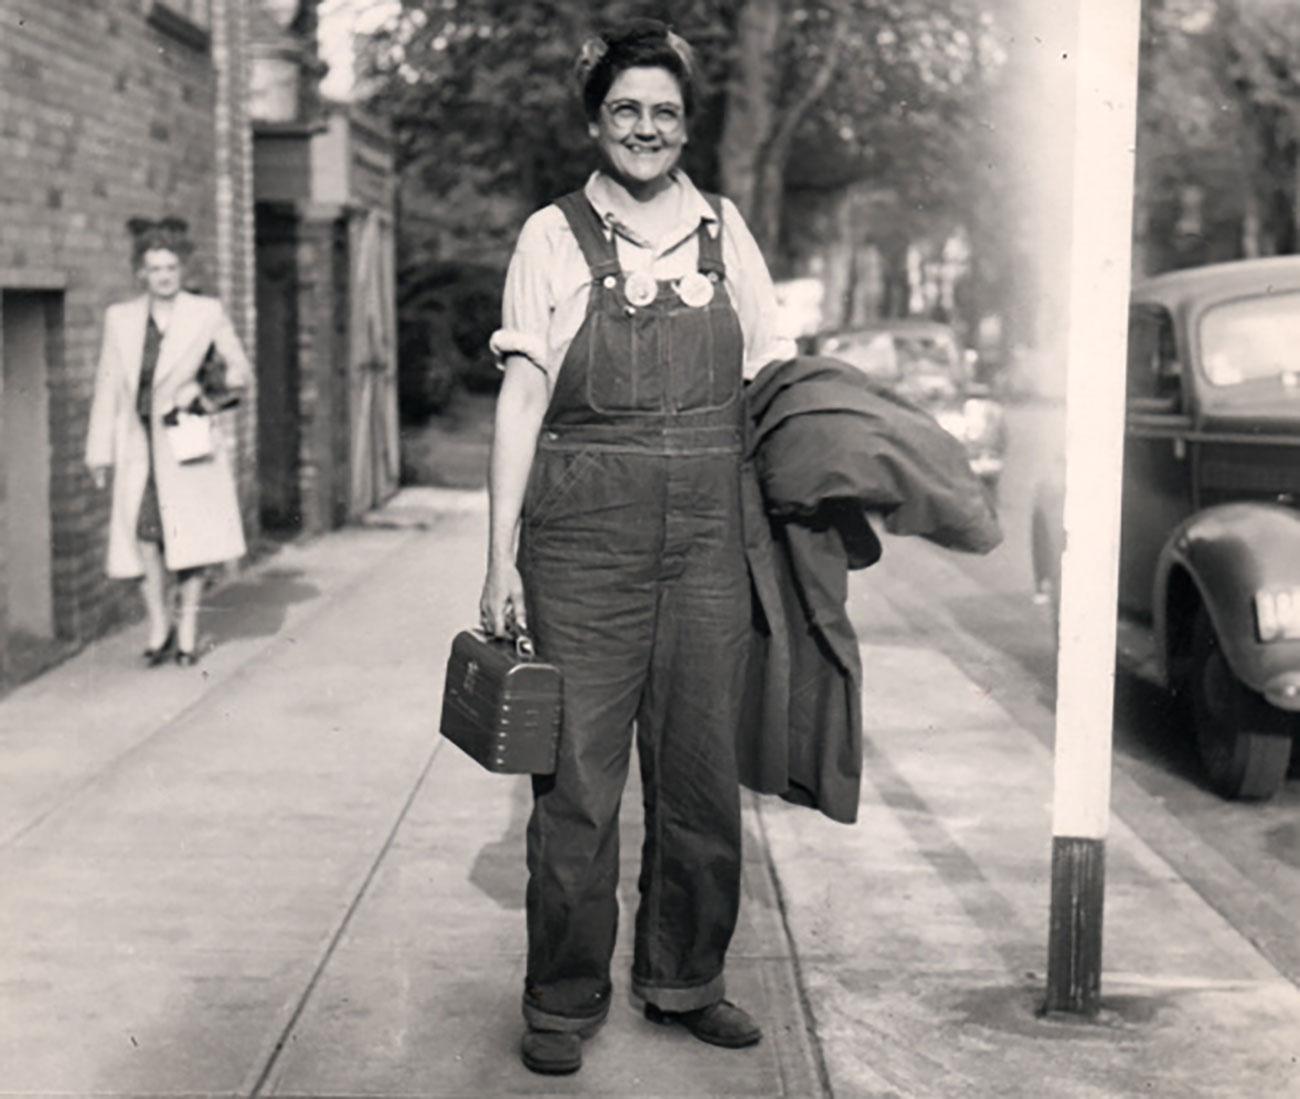 Ruby Bingham, worker at Kaiser shipyard, in 1943.